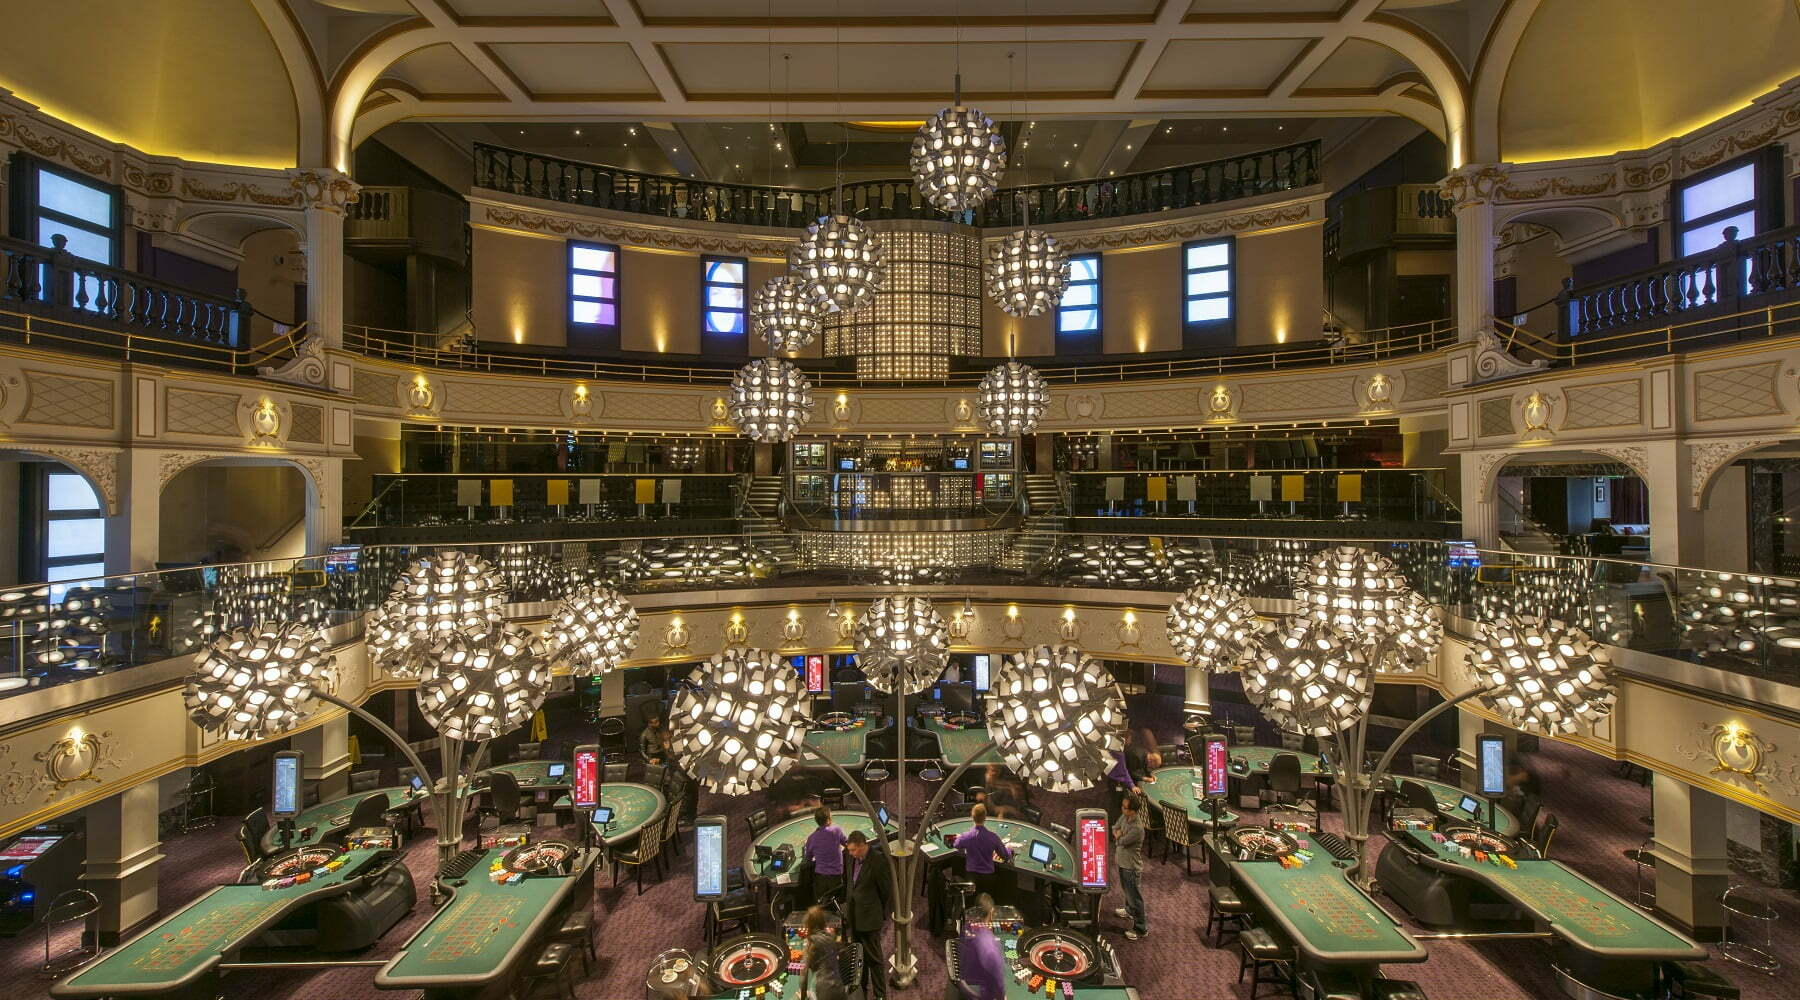 Hippodrome Report Venue Safe And Secure As Closure Looms